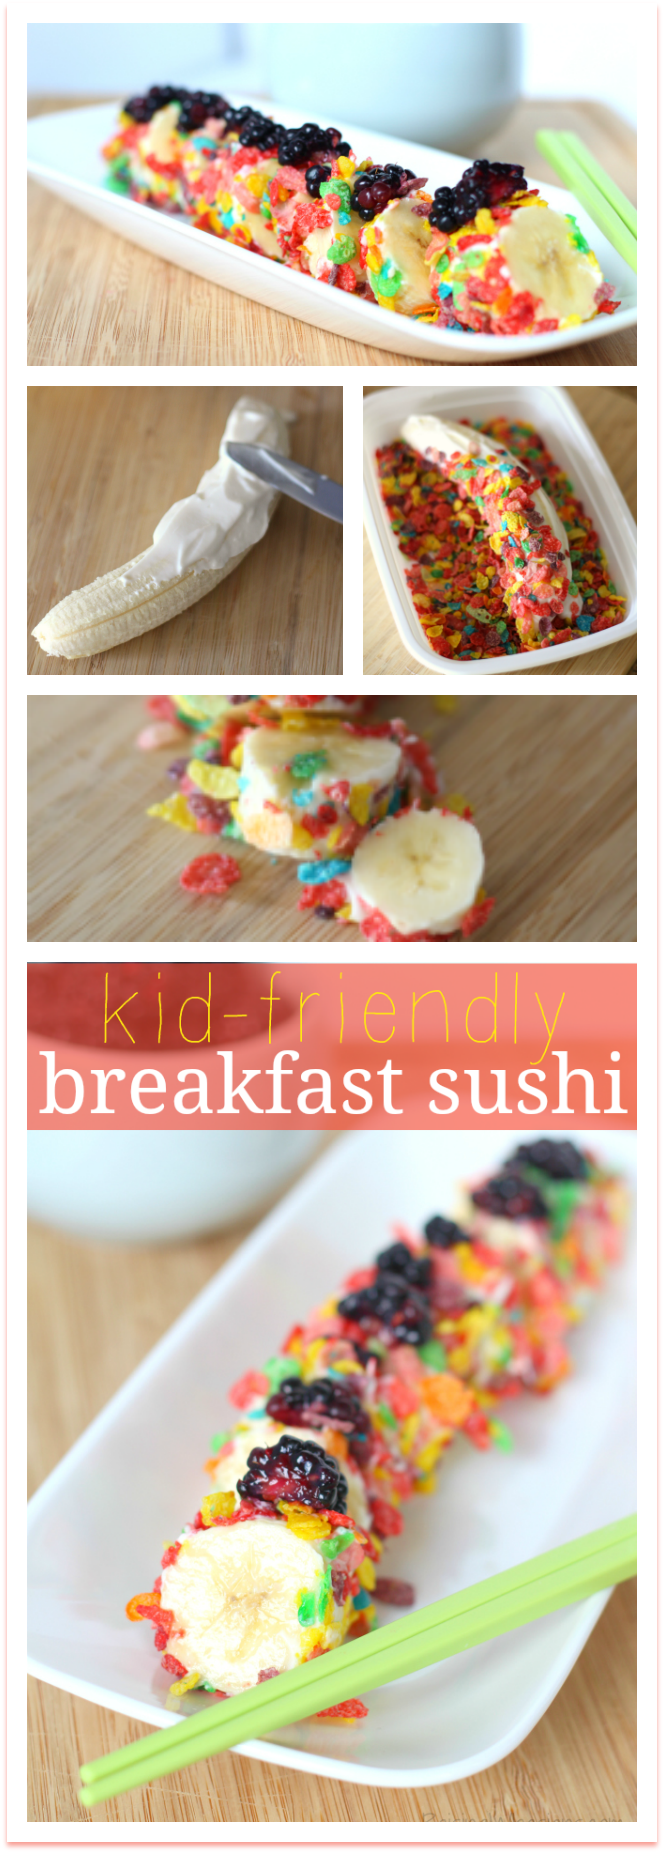 Kid Friendly Breakfast Sushi Recipe | Quick and FUN kids breakfast idea - perfect for back-to-school! Yummy Breakfast Sushi for kids with Fruity Pebbles - Perfect for your back to school meal plan or as part of a kids brunch party. Would also make a great after school snack. #Breakfast #BreakfastRecipe #Recipe #Snack